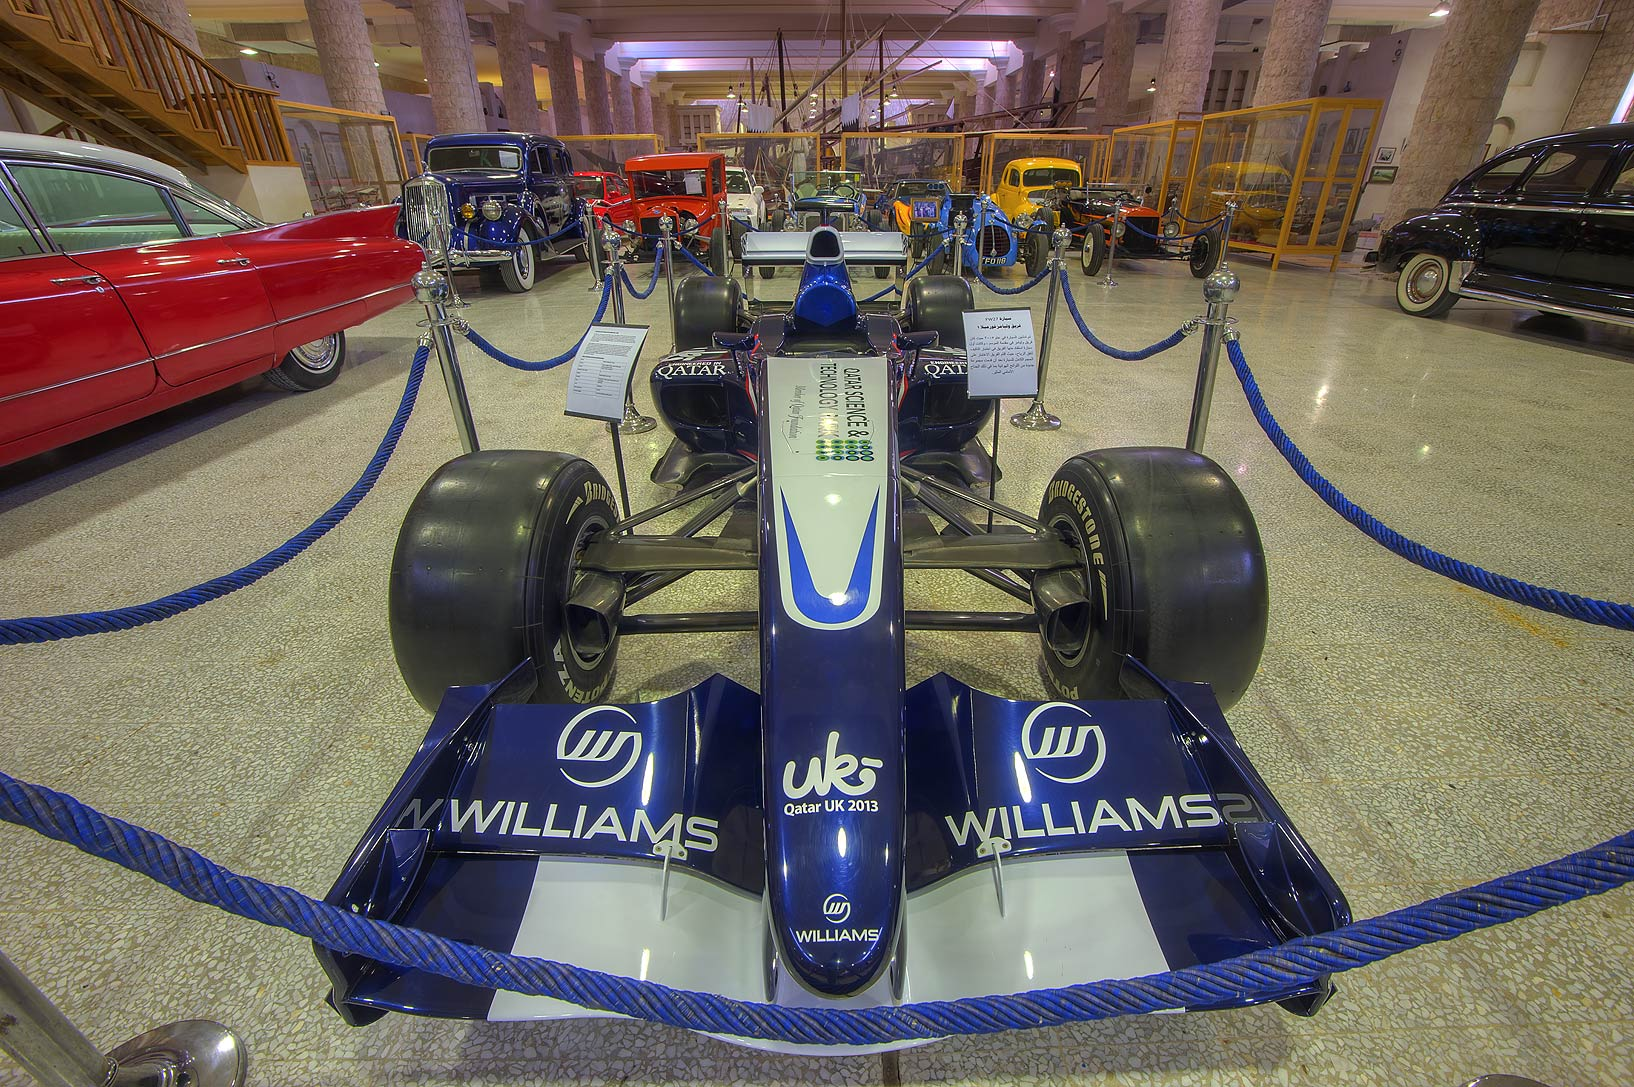 Williams racing car in Sheikh Faisal Bin Qassim...Museum near Al-Shahaniya. Doha, Qatar